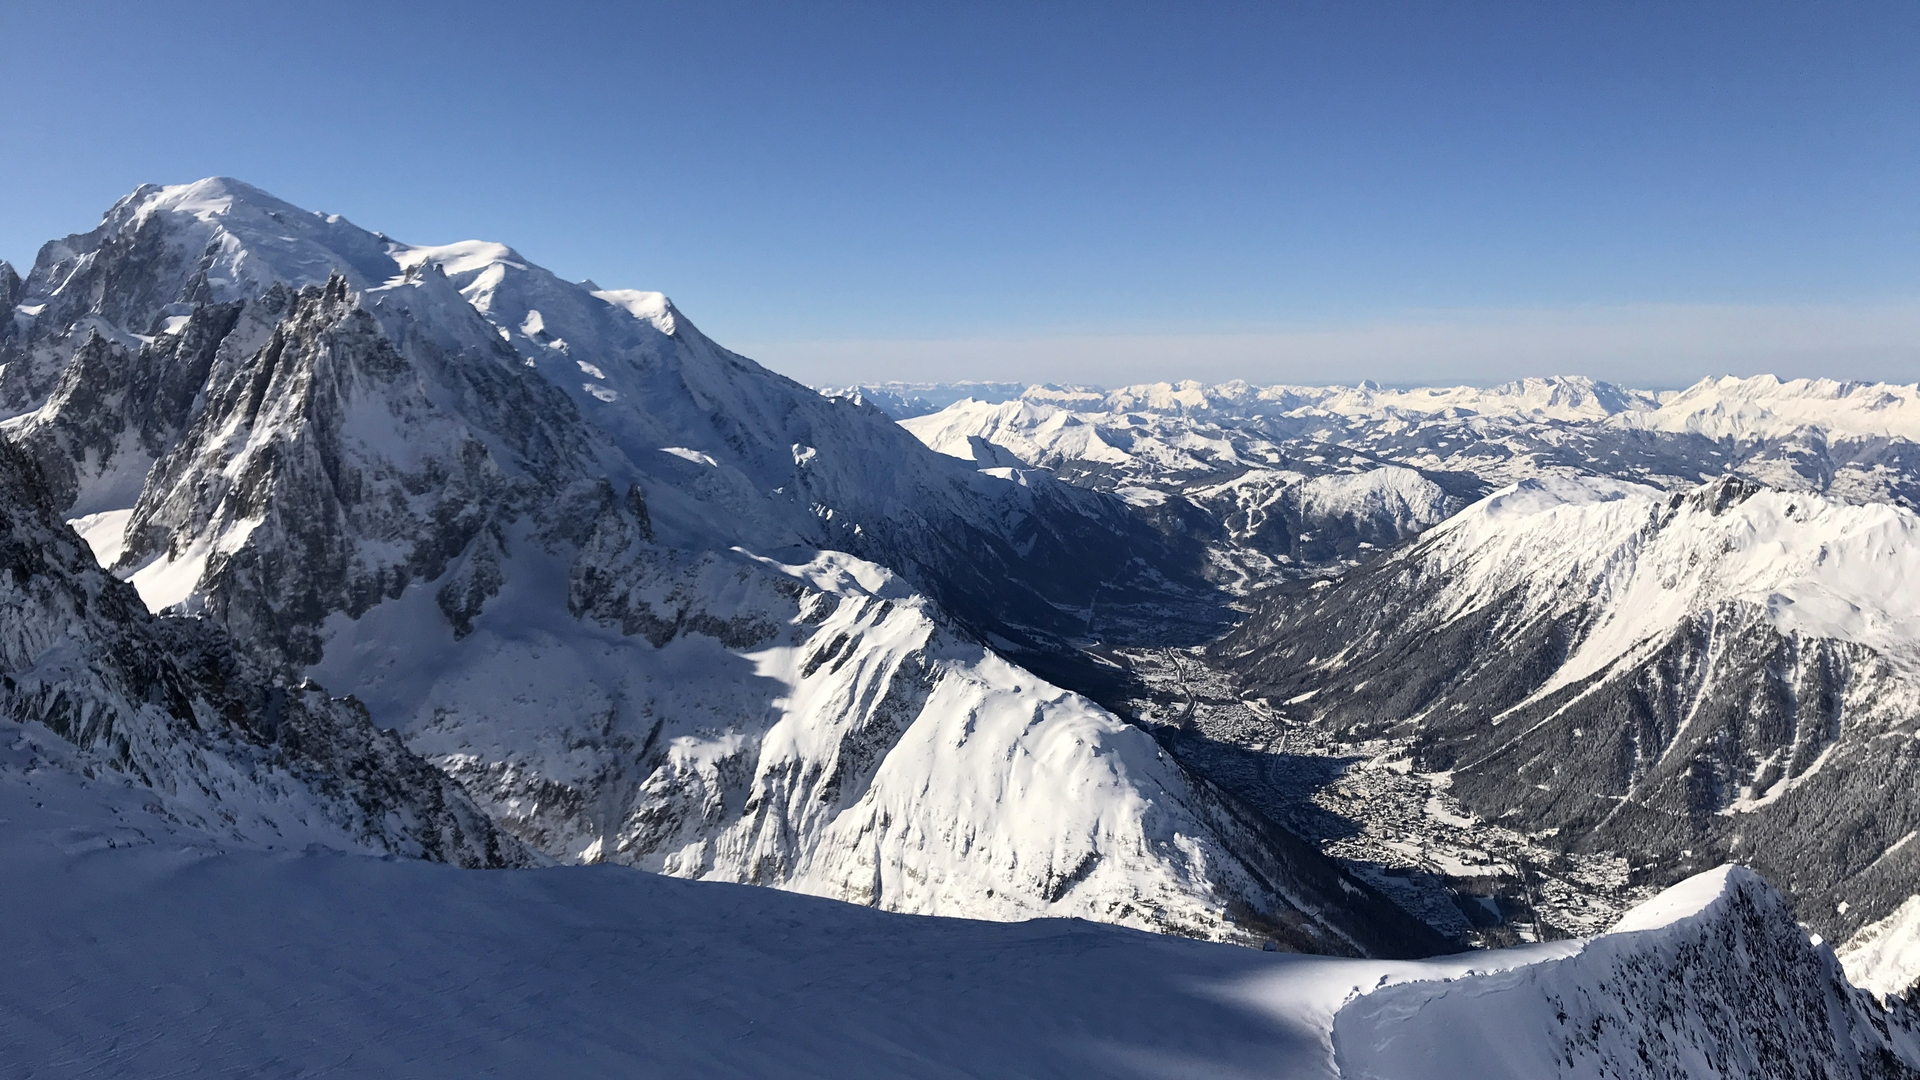 Argentiere domaine skiable